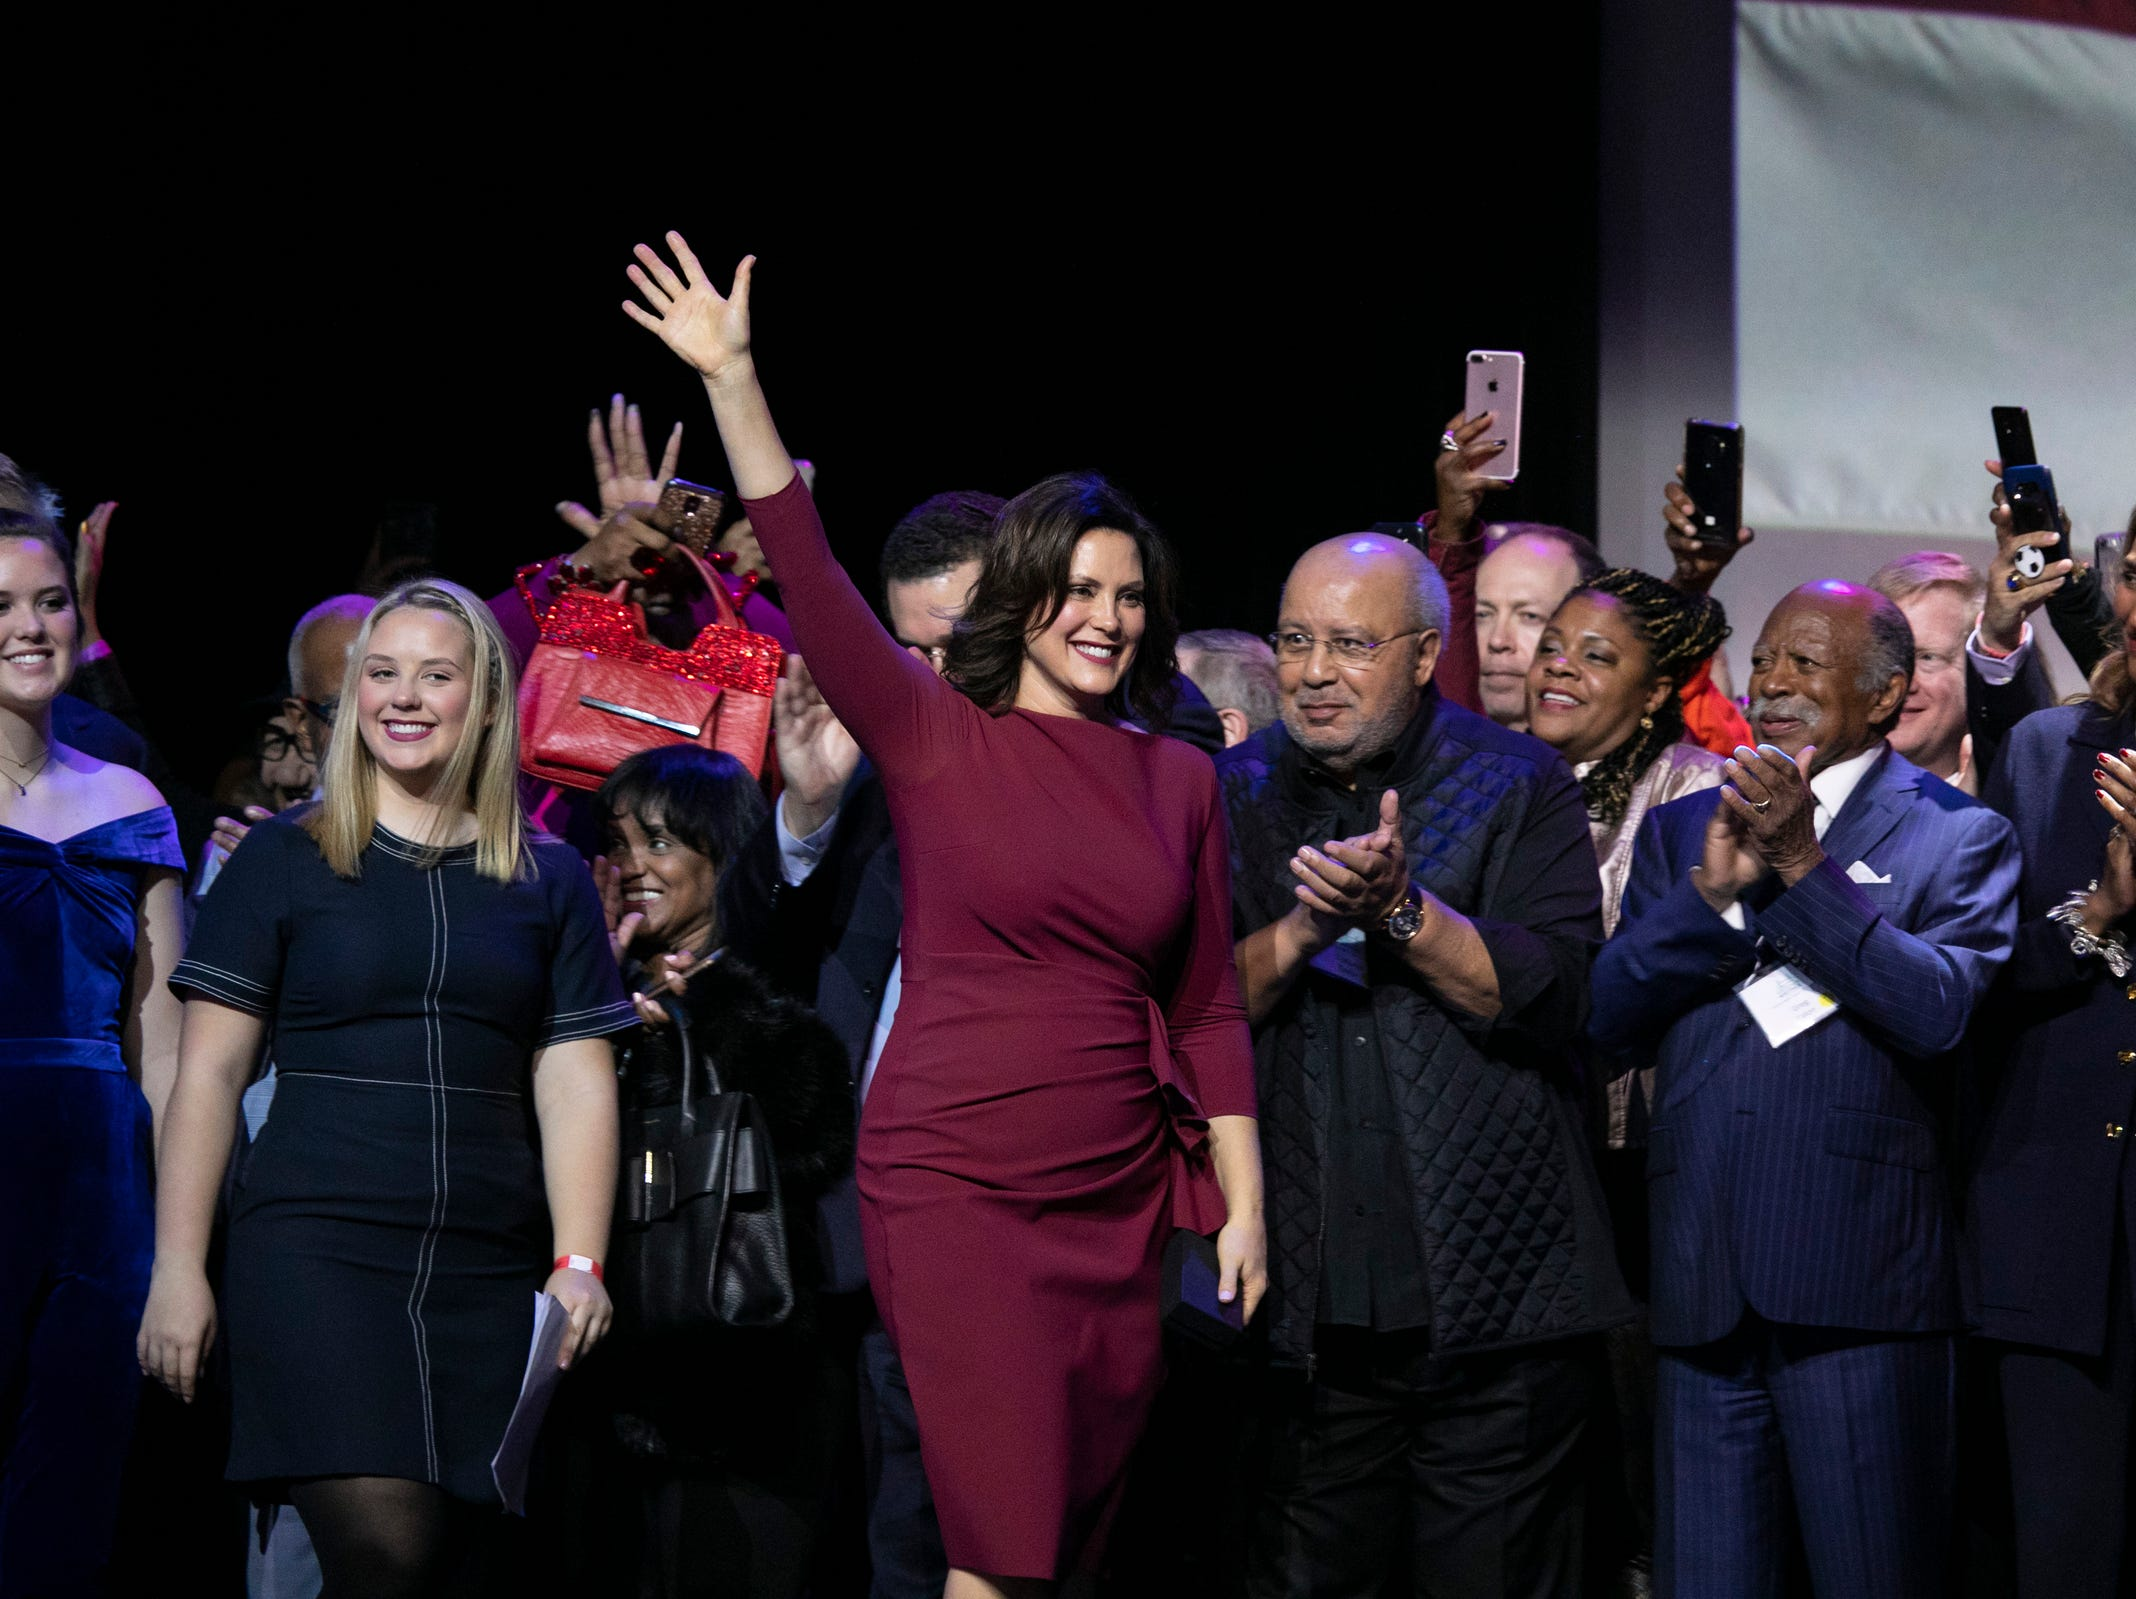 Michigan Governor elect Gretchen Whitmer celebrates her victory during the watch party held at the Sound Board in the MotorCity Casino in Detroit Tuesday, Nov. 6, 2018.